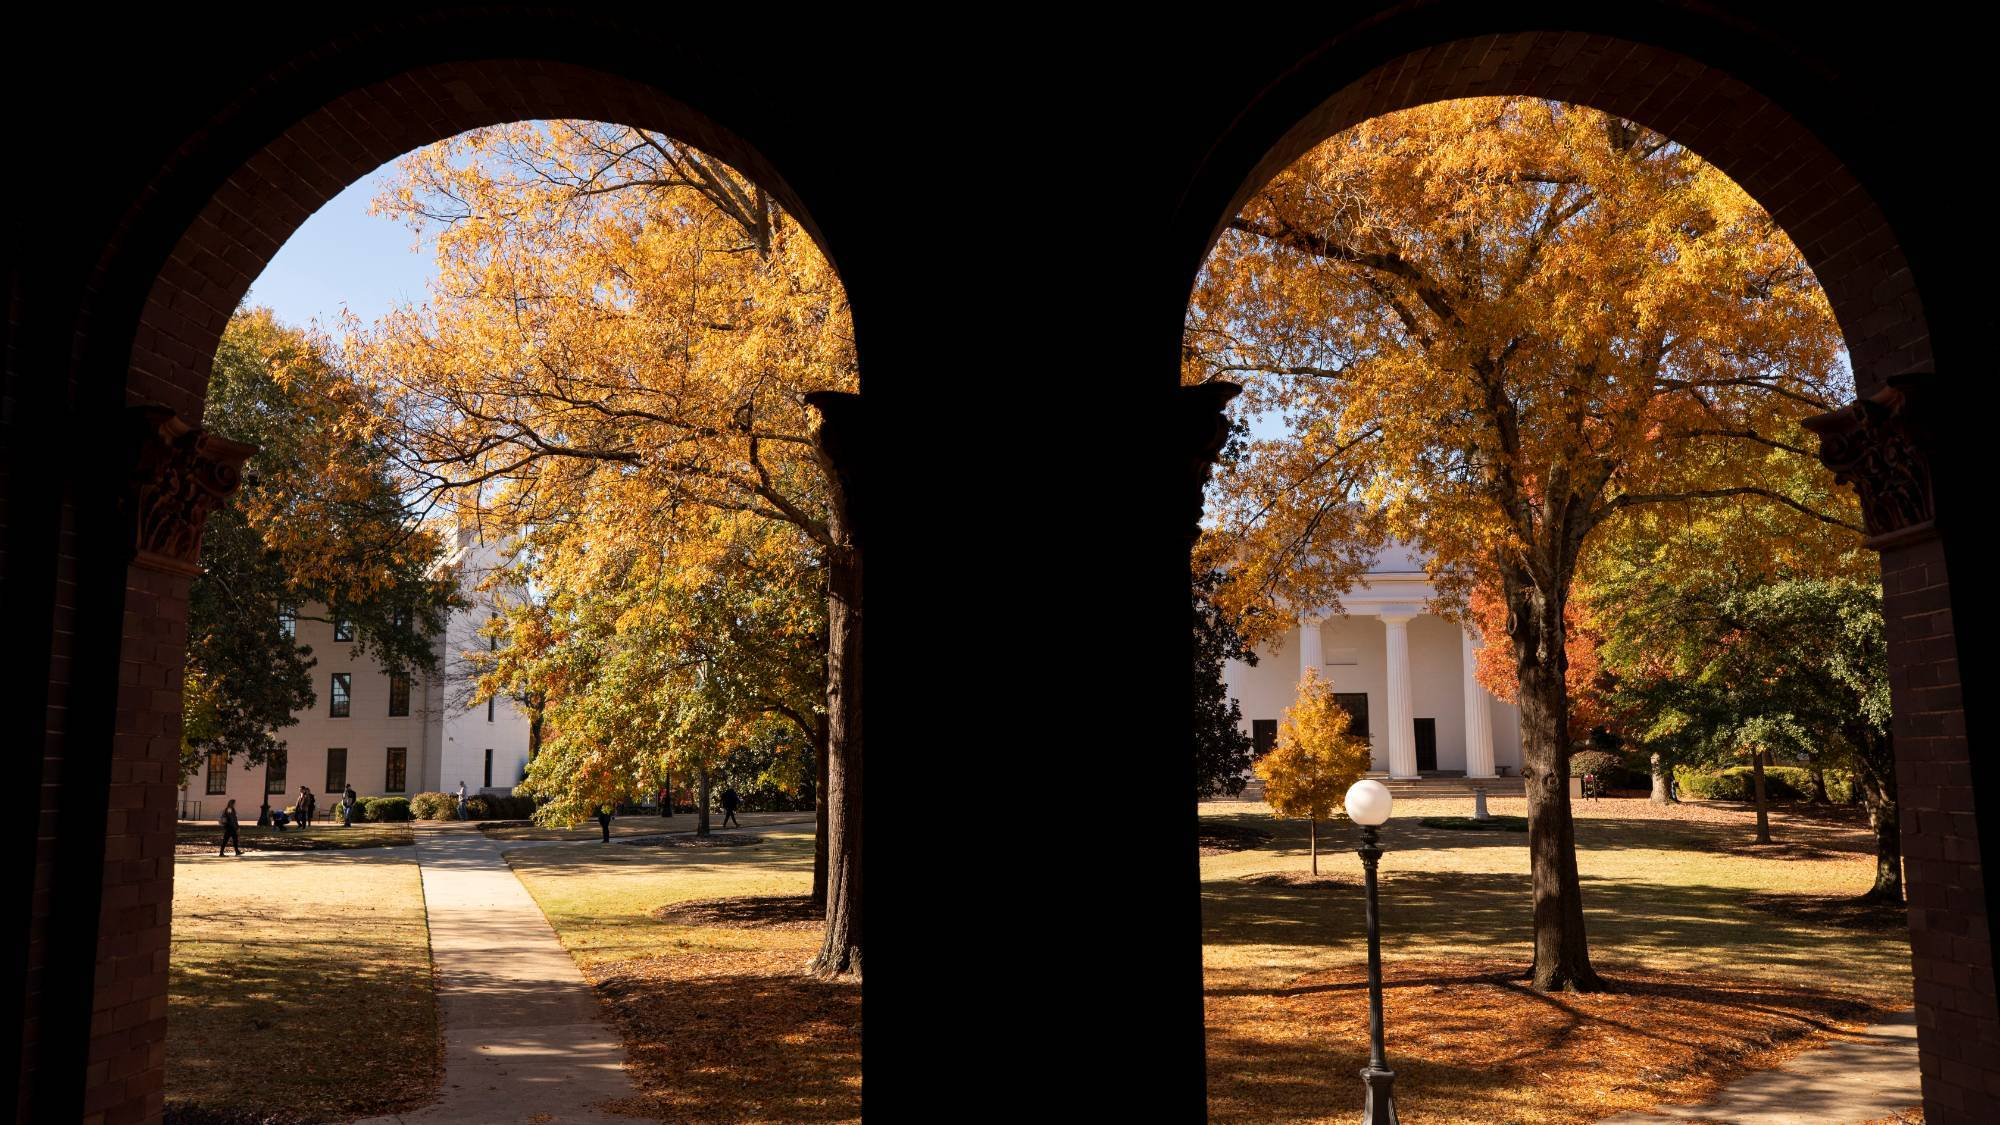 View through two brick archways to a campus quad in autumn